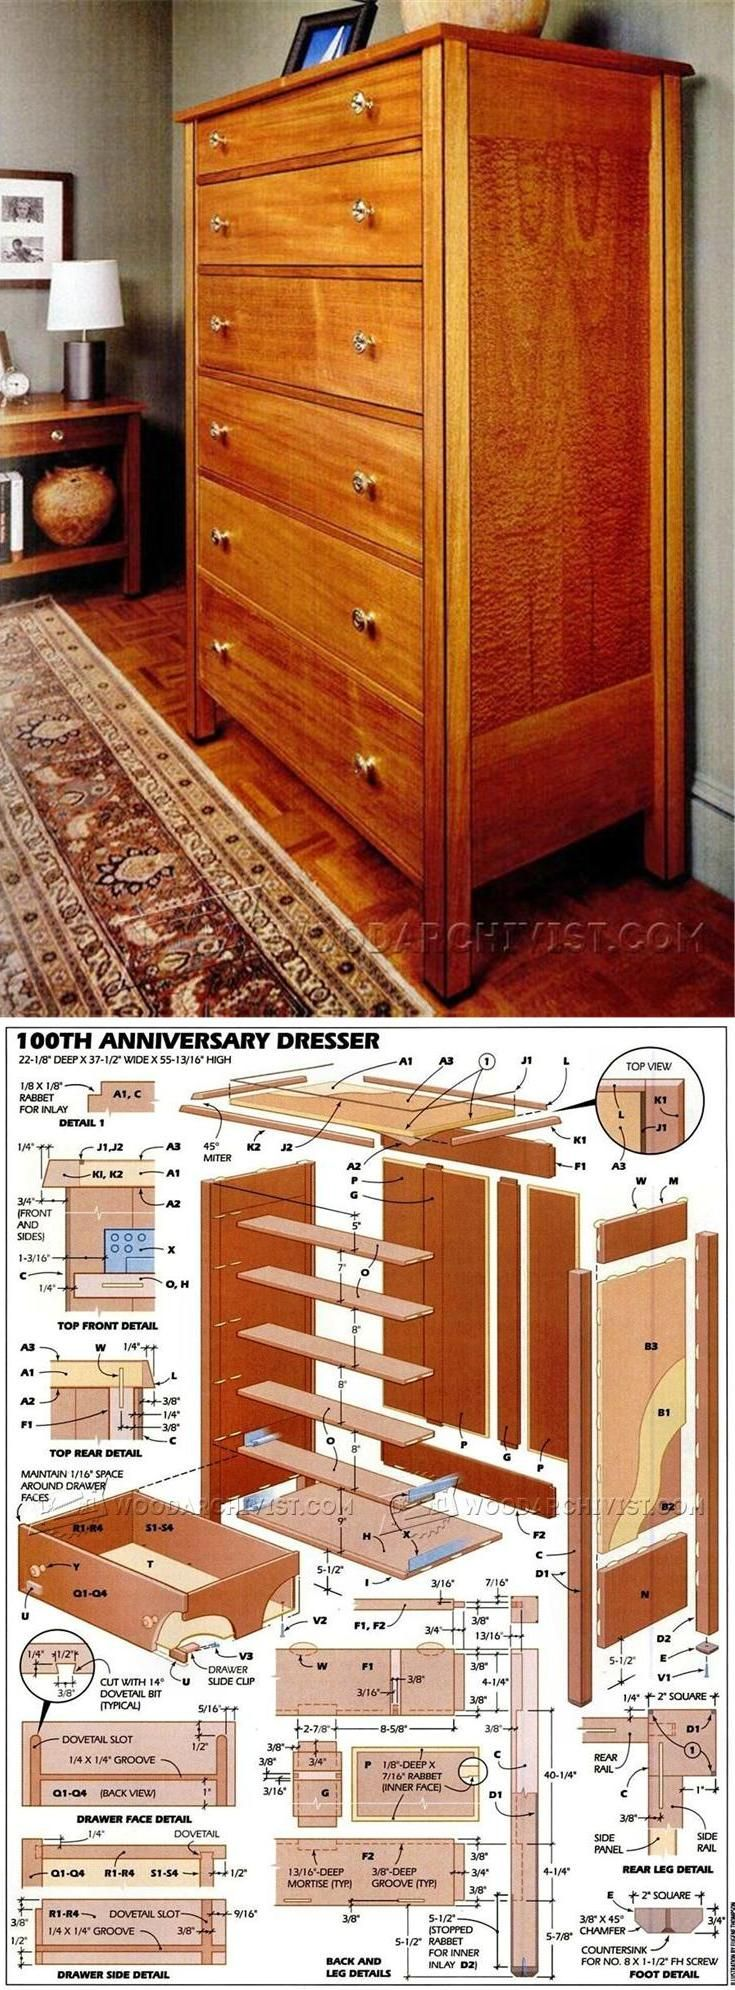 Dresser Plans - Furniture Plans and Projects | WoodArchivist.com